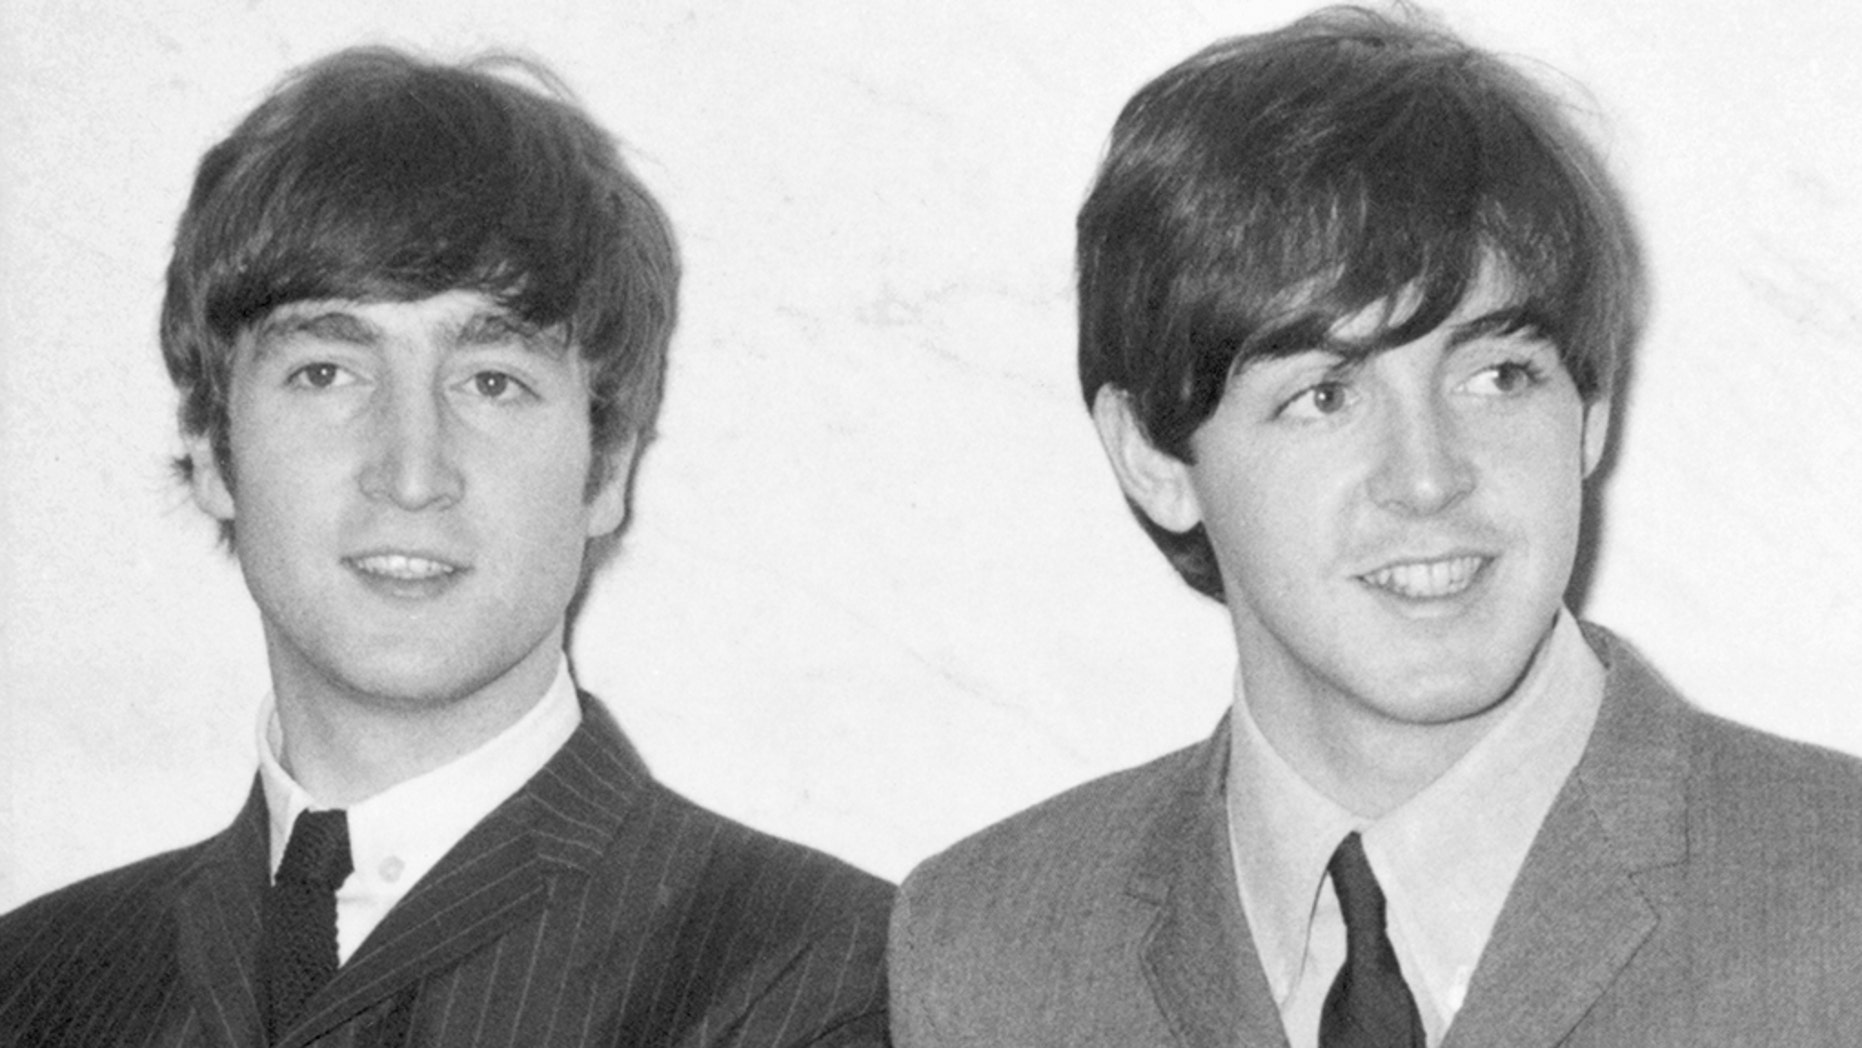 """Paul McCartney admitted that he and John Lennon """"were competitive"""" with each other and that his former Beatles bandmate only """"once"""" praised one of his songs. John Lennon and Paul McCartney seen in this December 1963 photo. John Lennon and Paul McCartney seen in this December 1963 photo. Lennon and McCartney smiling in a photo from 1963."""